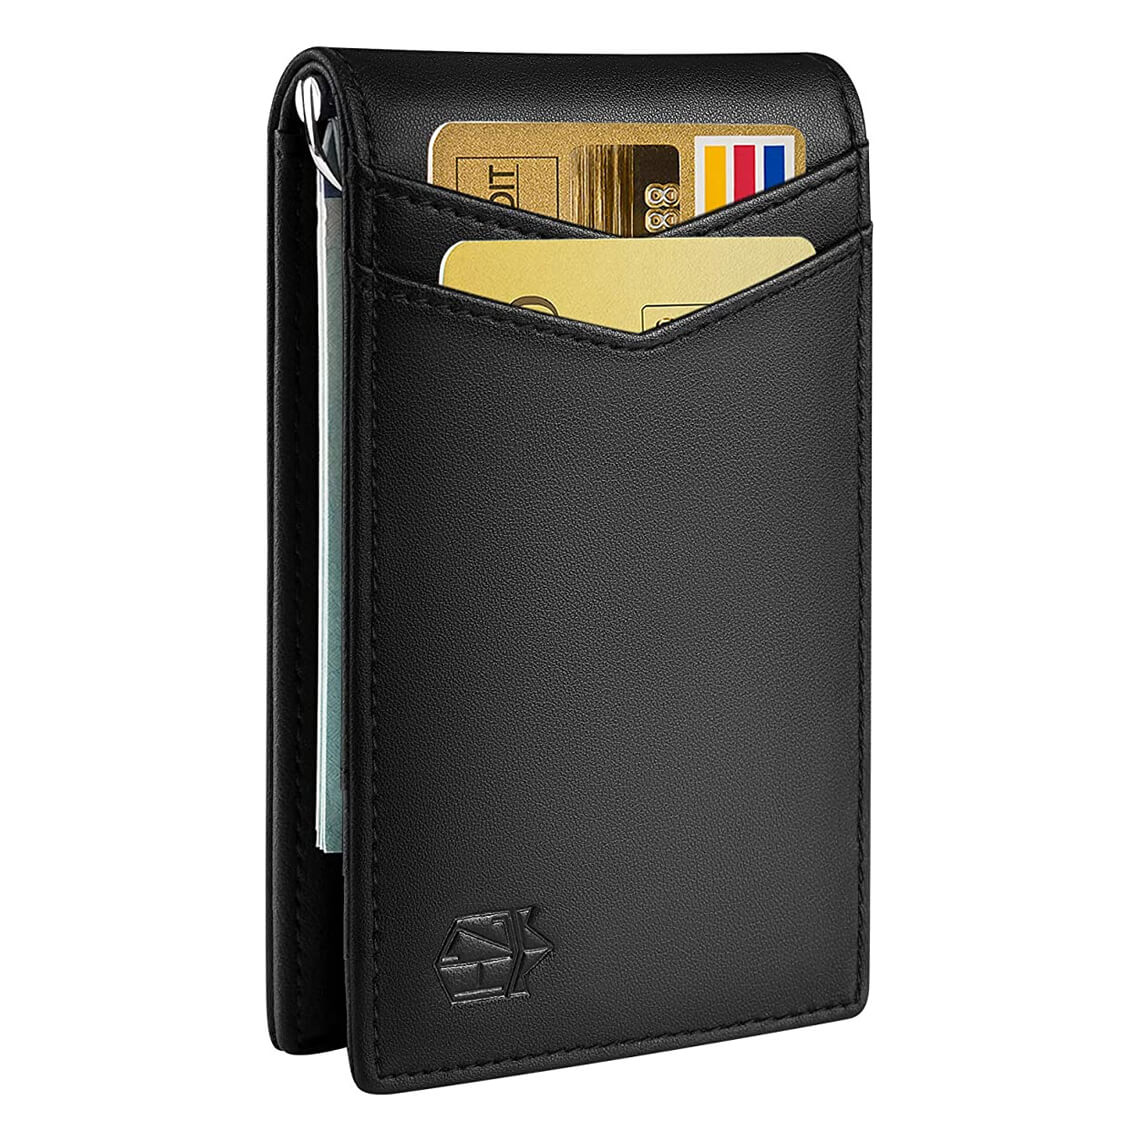 Zitahli Minimalist Bifold Front Pocket Wallet with Money Clip